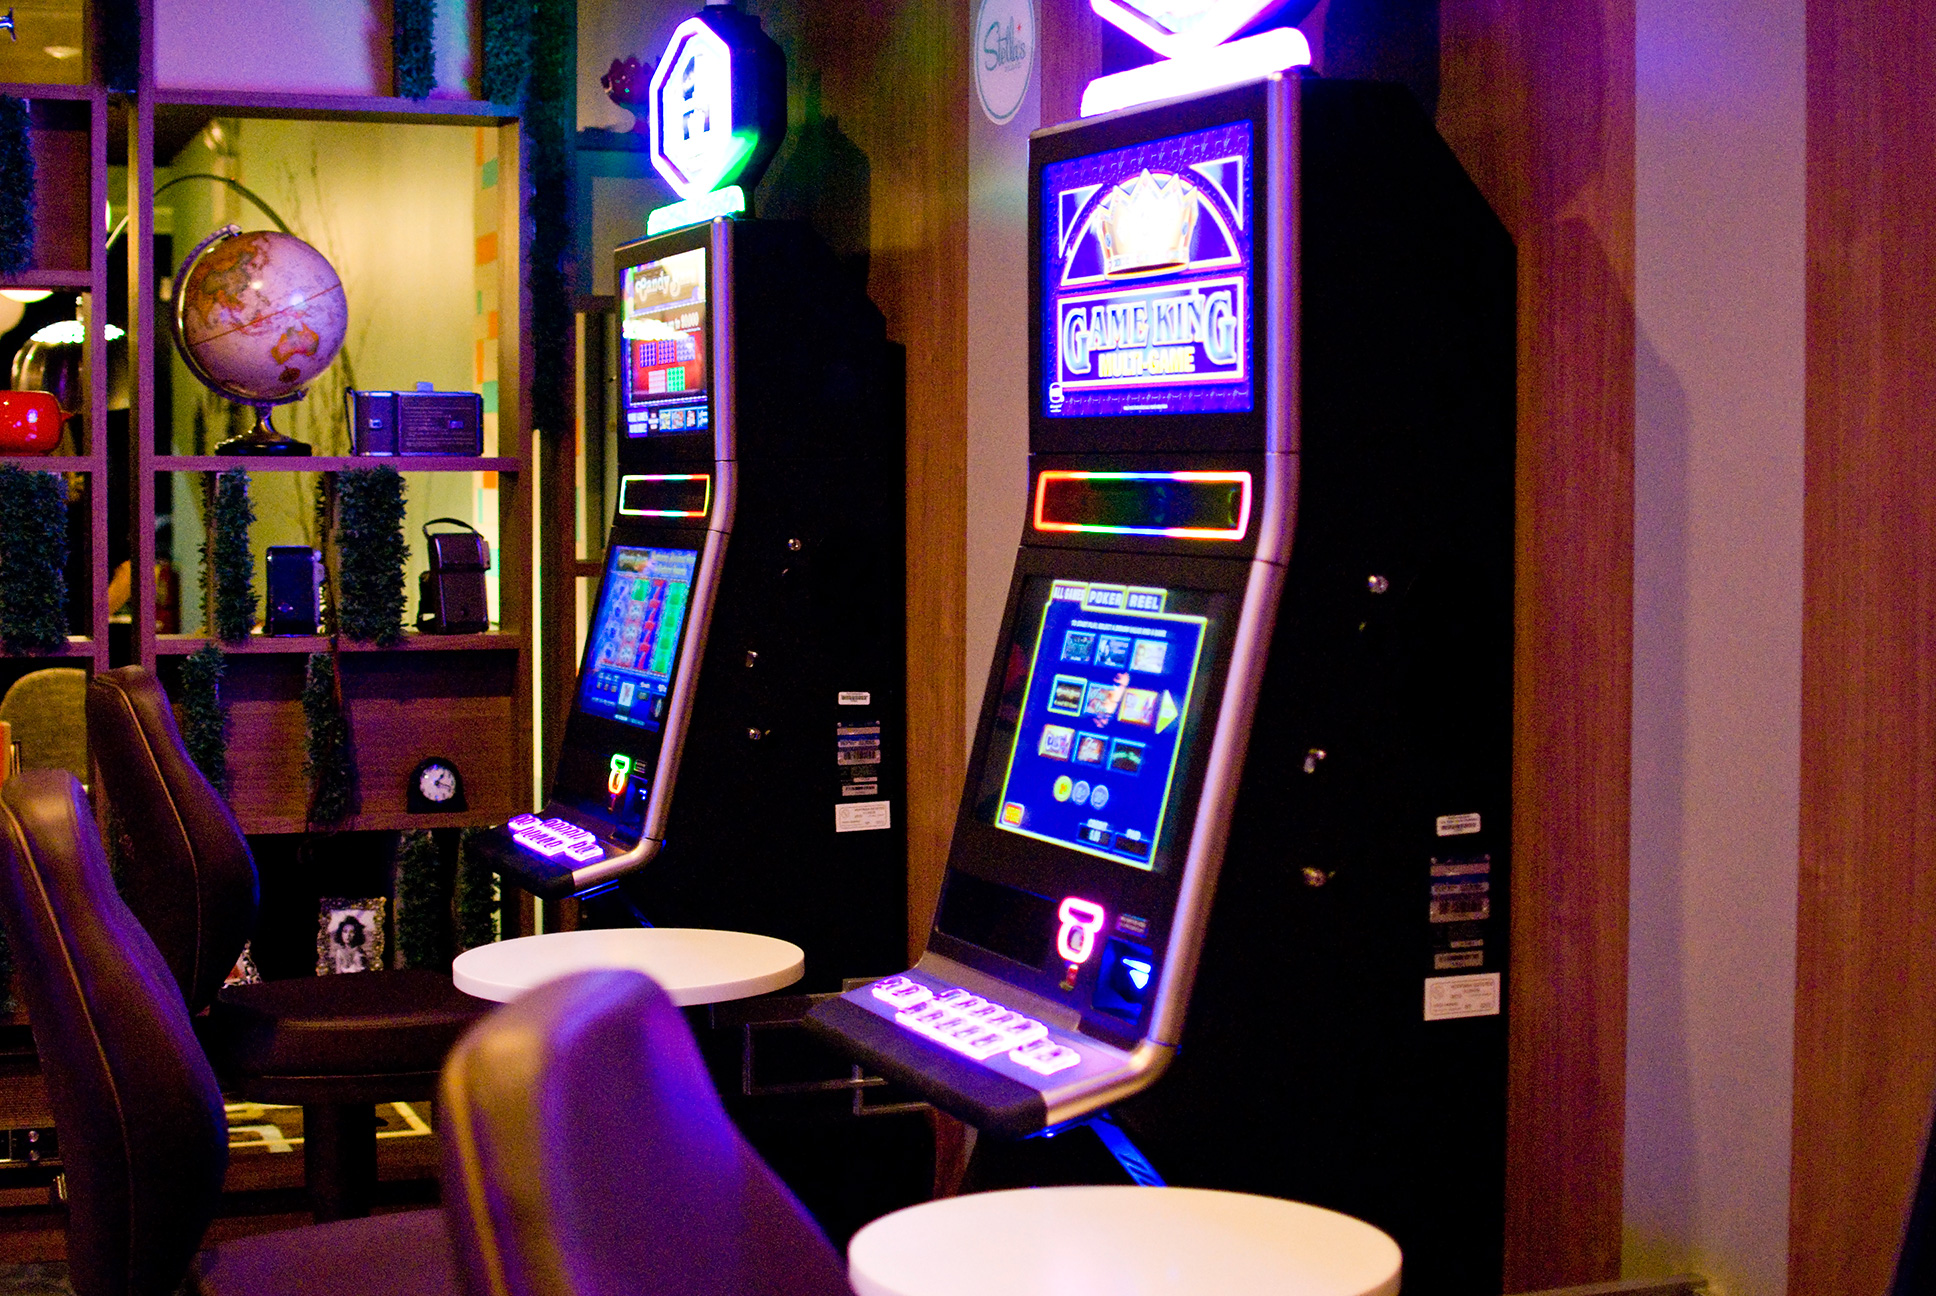 Two glowing slot machines in front of modular shelving